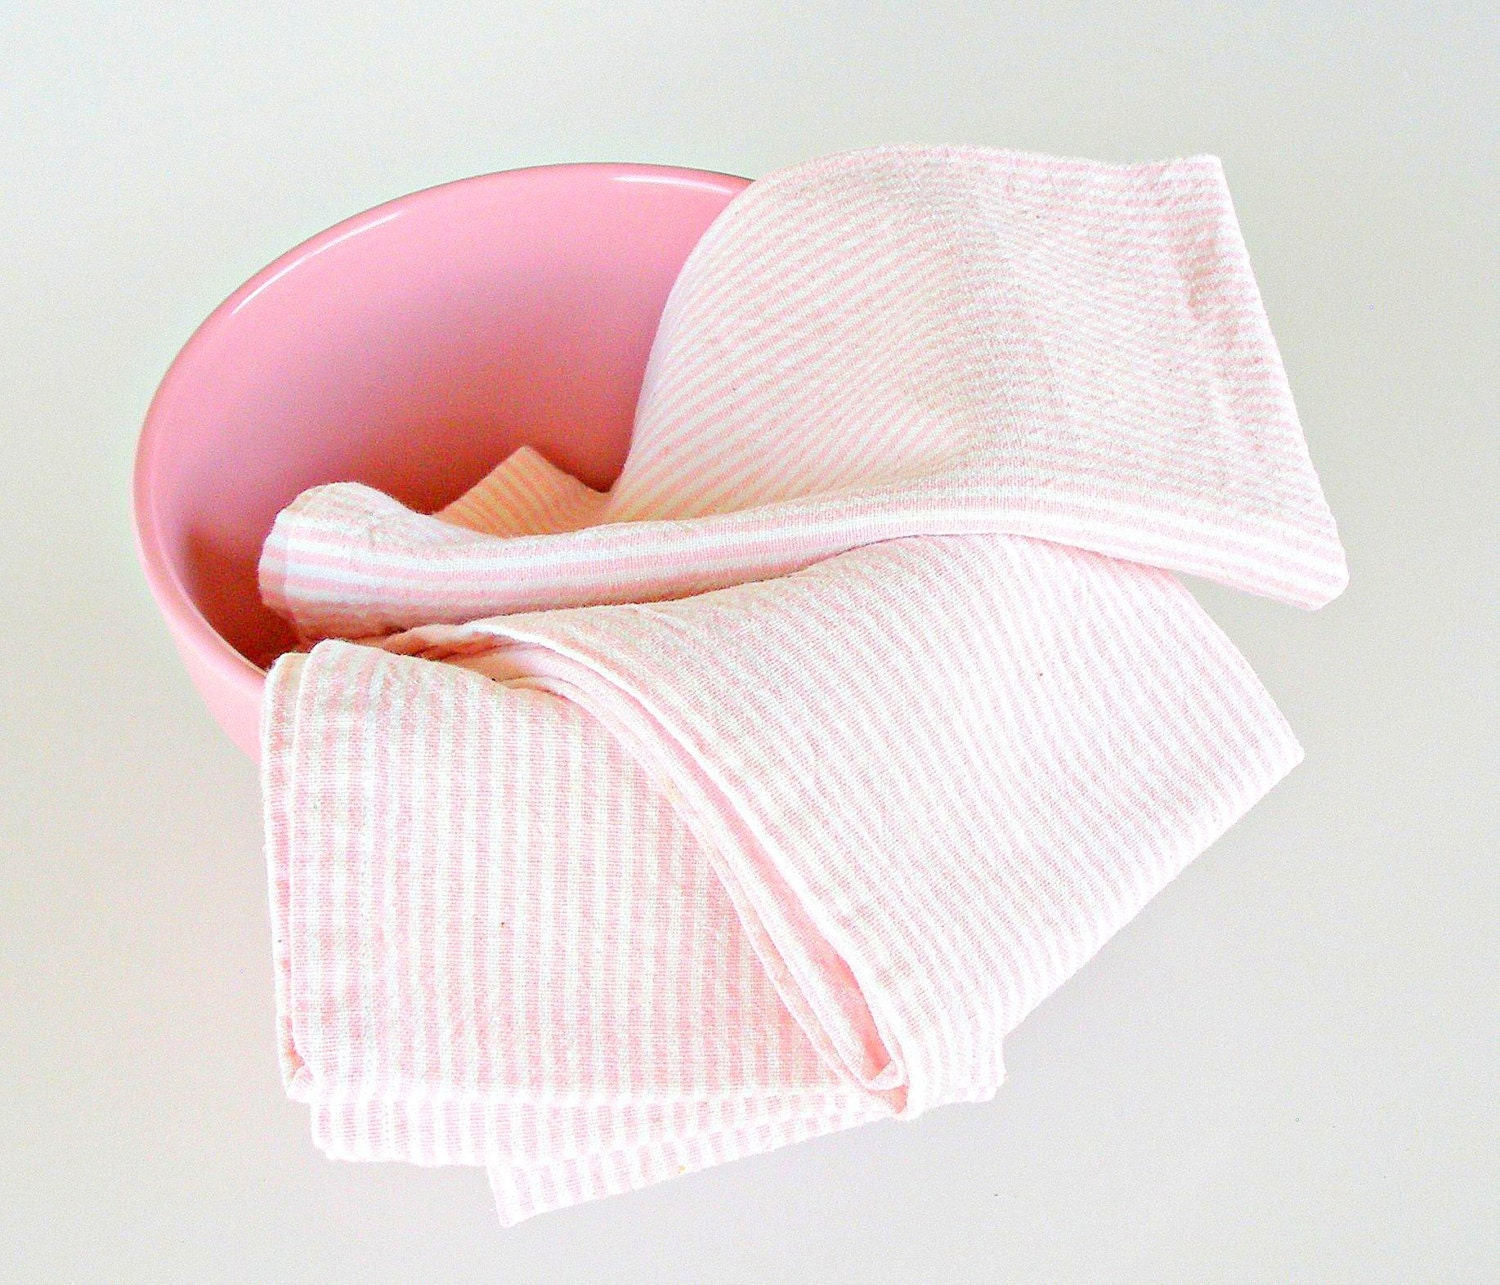 Vintage Kitchen Towels Pink White Striped Cotton Dish Towels